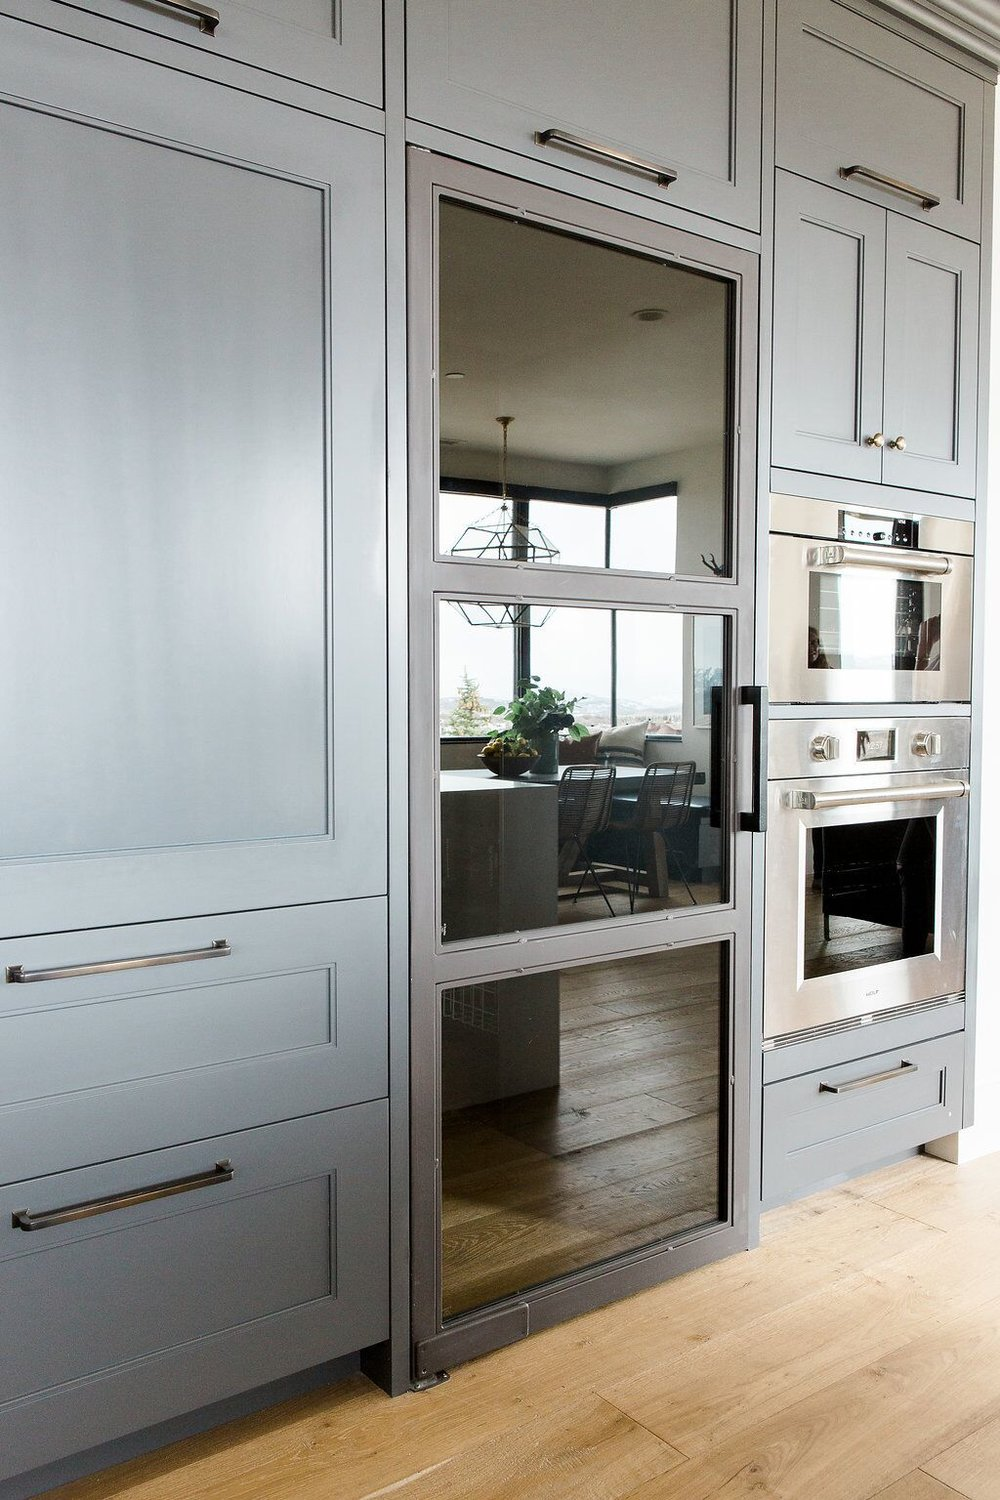 Large glass door and double oven in modern kitchen